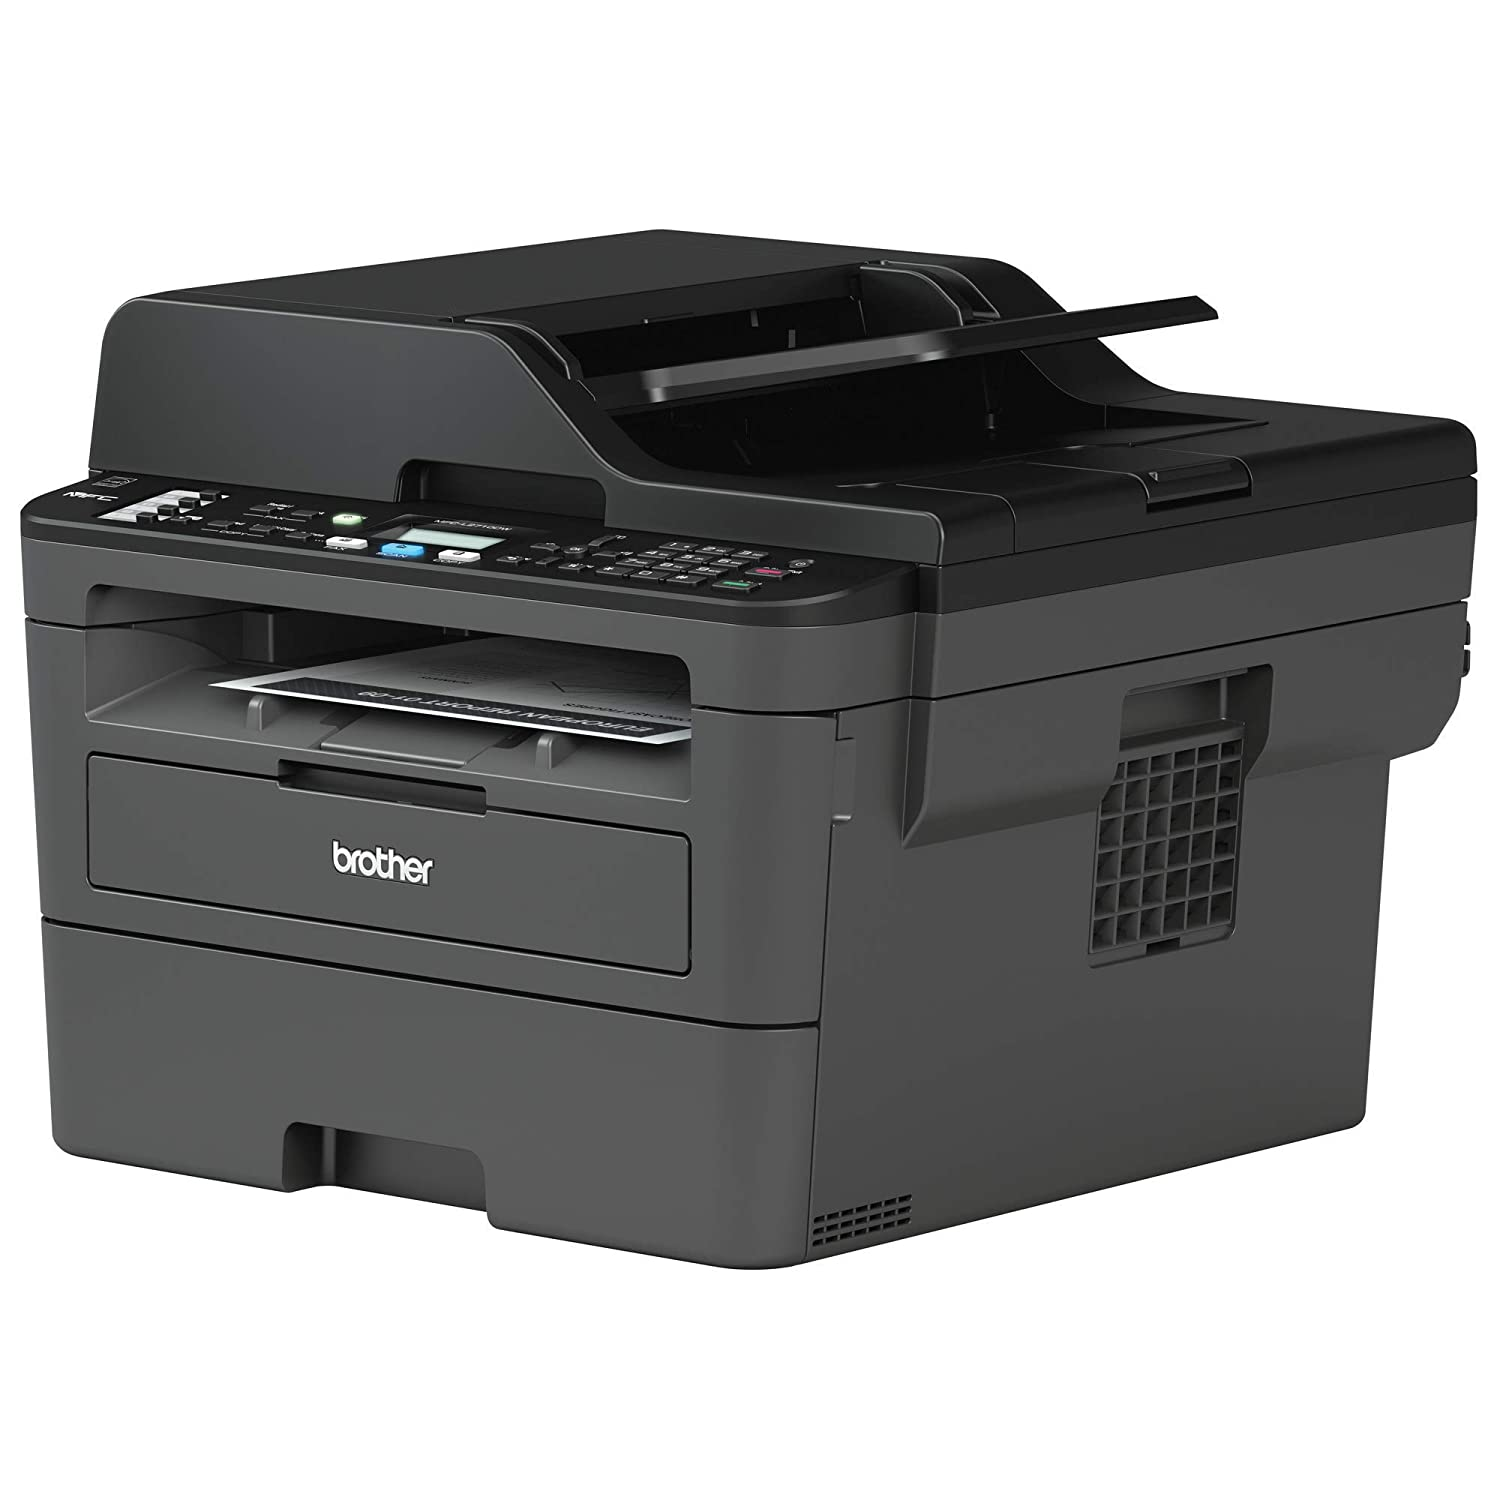 BROTHER MFC-9970CDW TWAIN DRIVER